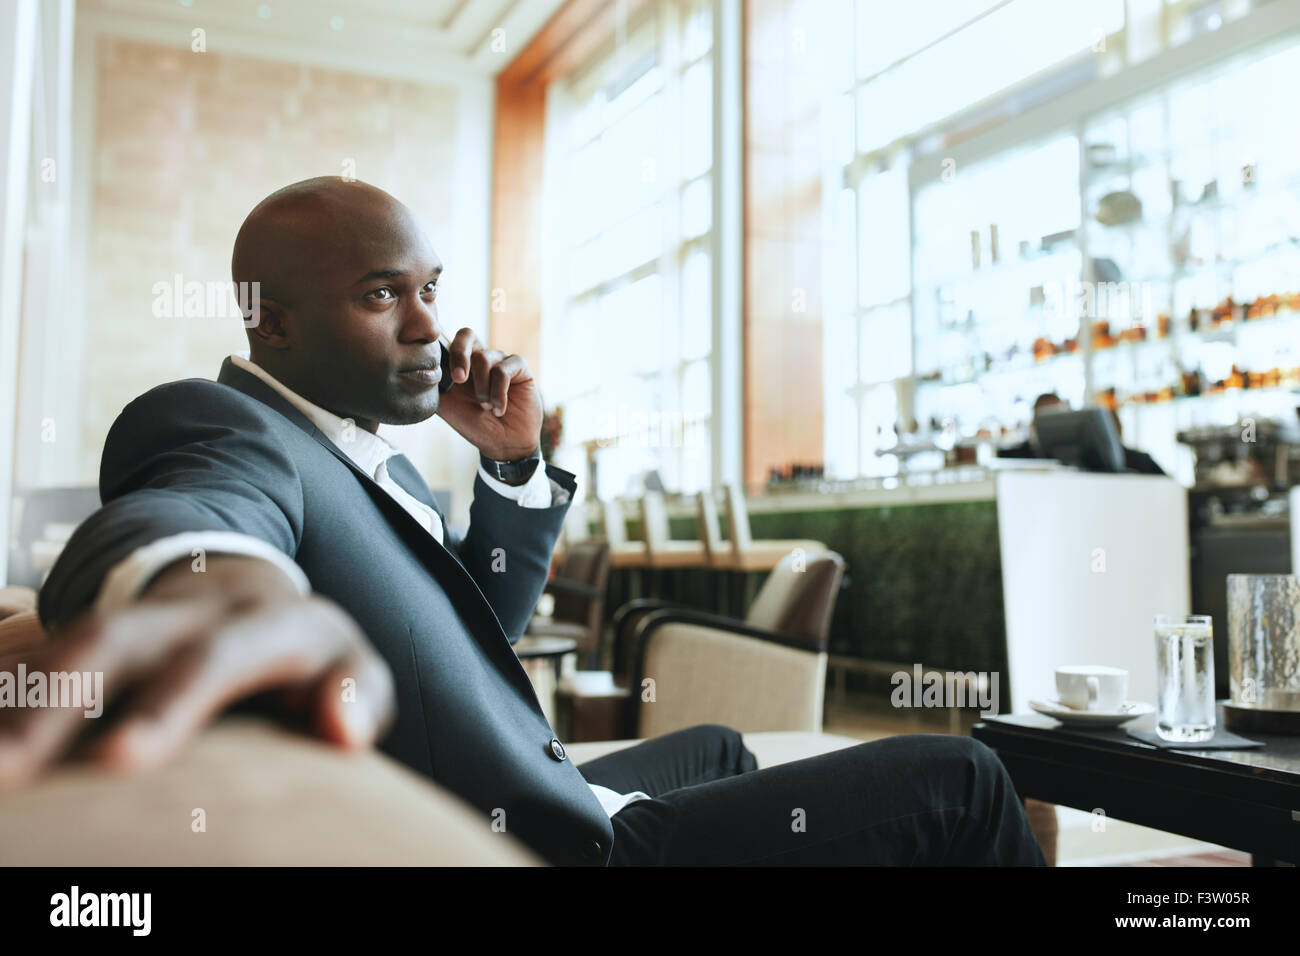 African business man talking on mobile phone while waiting in a hotel lobby. Young business executive using cell - Stock Image